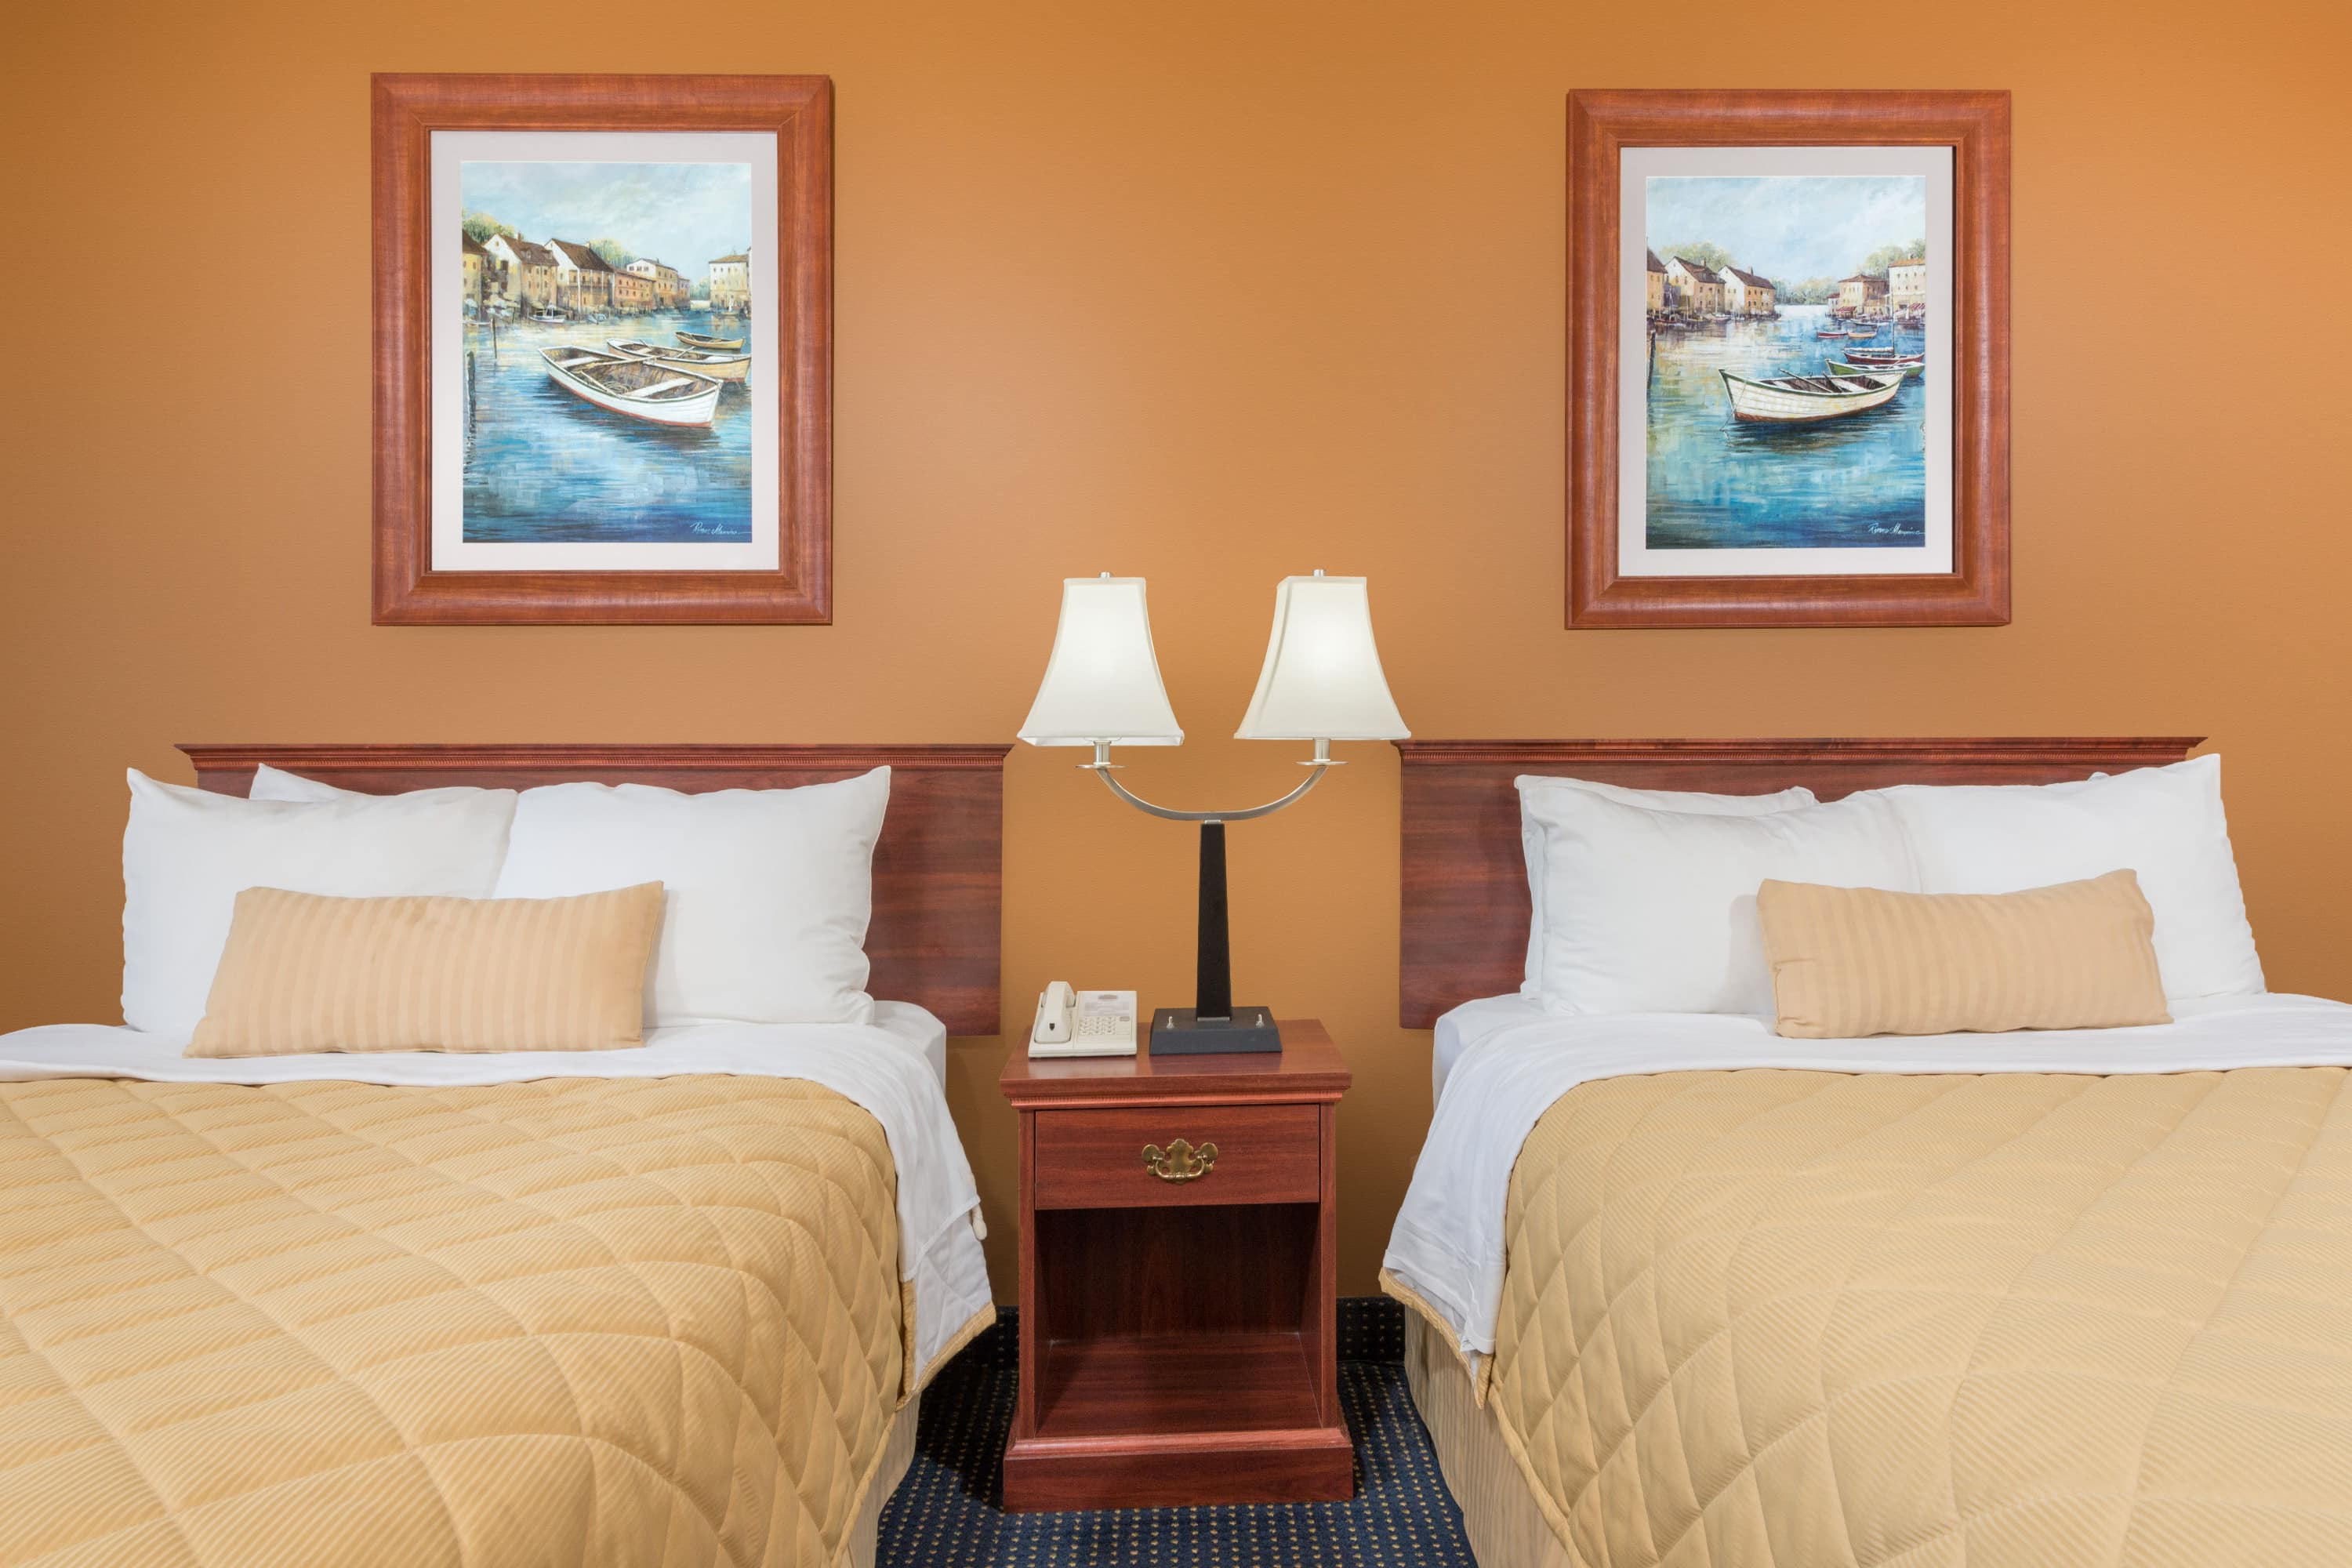 Guest room at the Ramada Limited Catlettsburg/Ashland in Catlettsburg, Kentucky